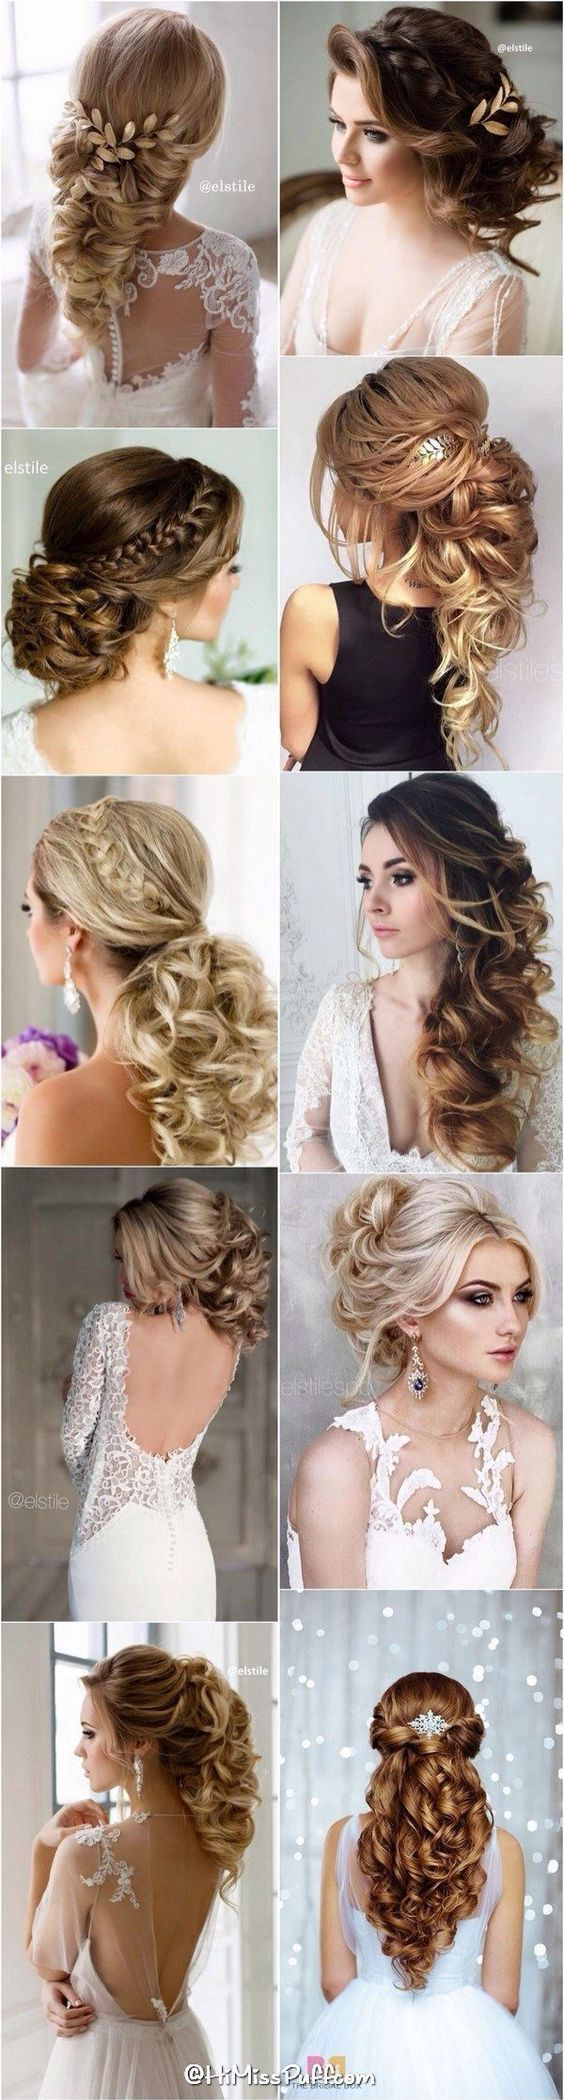 Wedding Updo Hairstyles for Brides